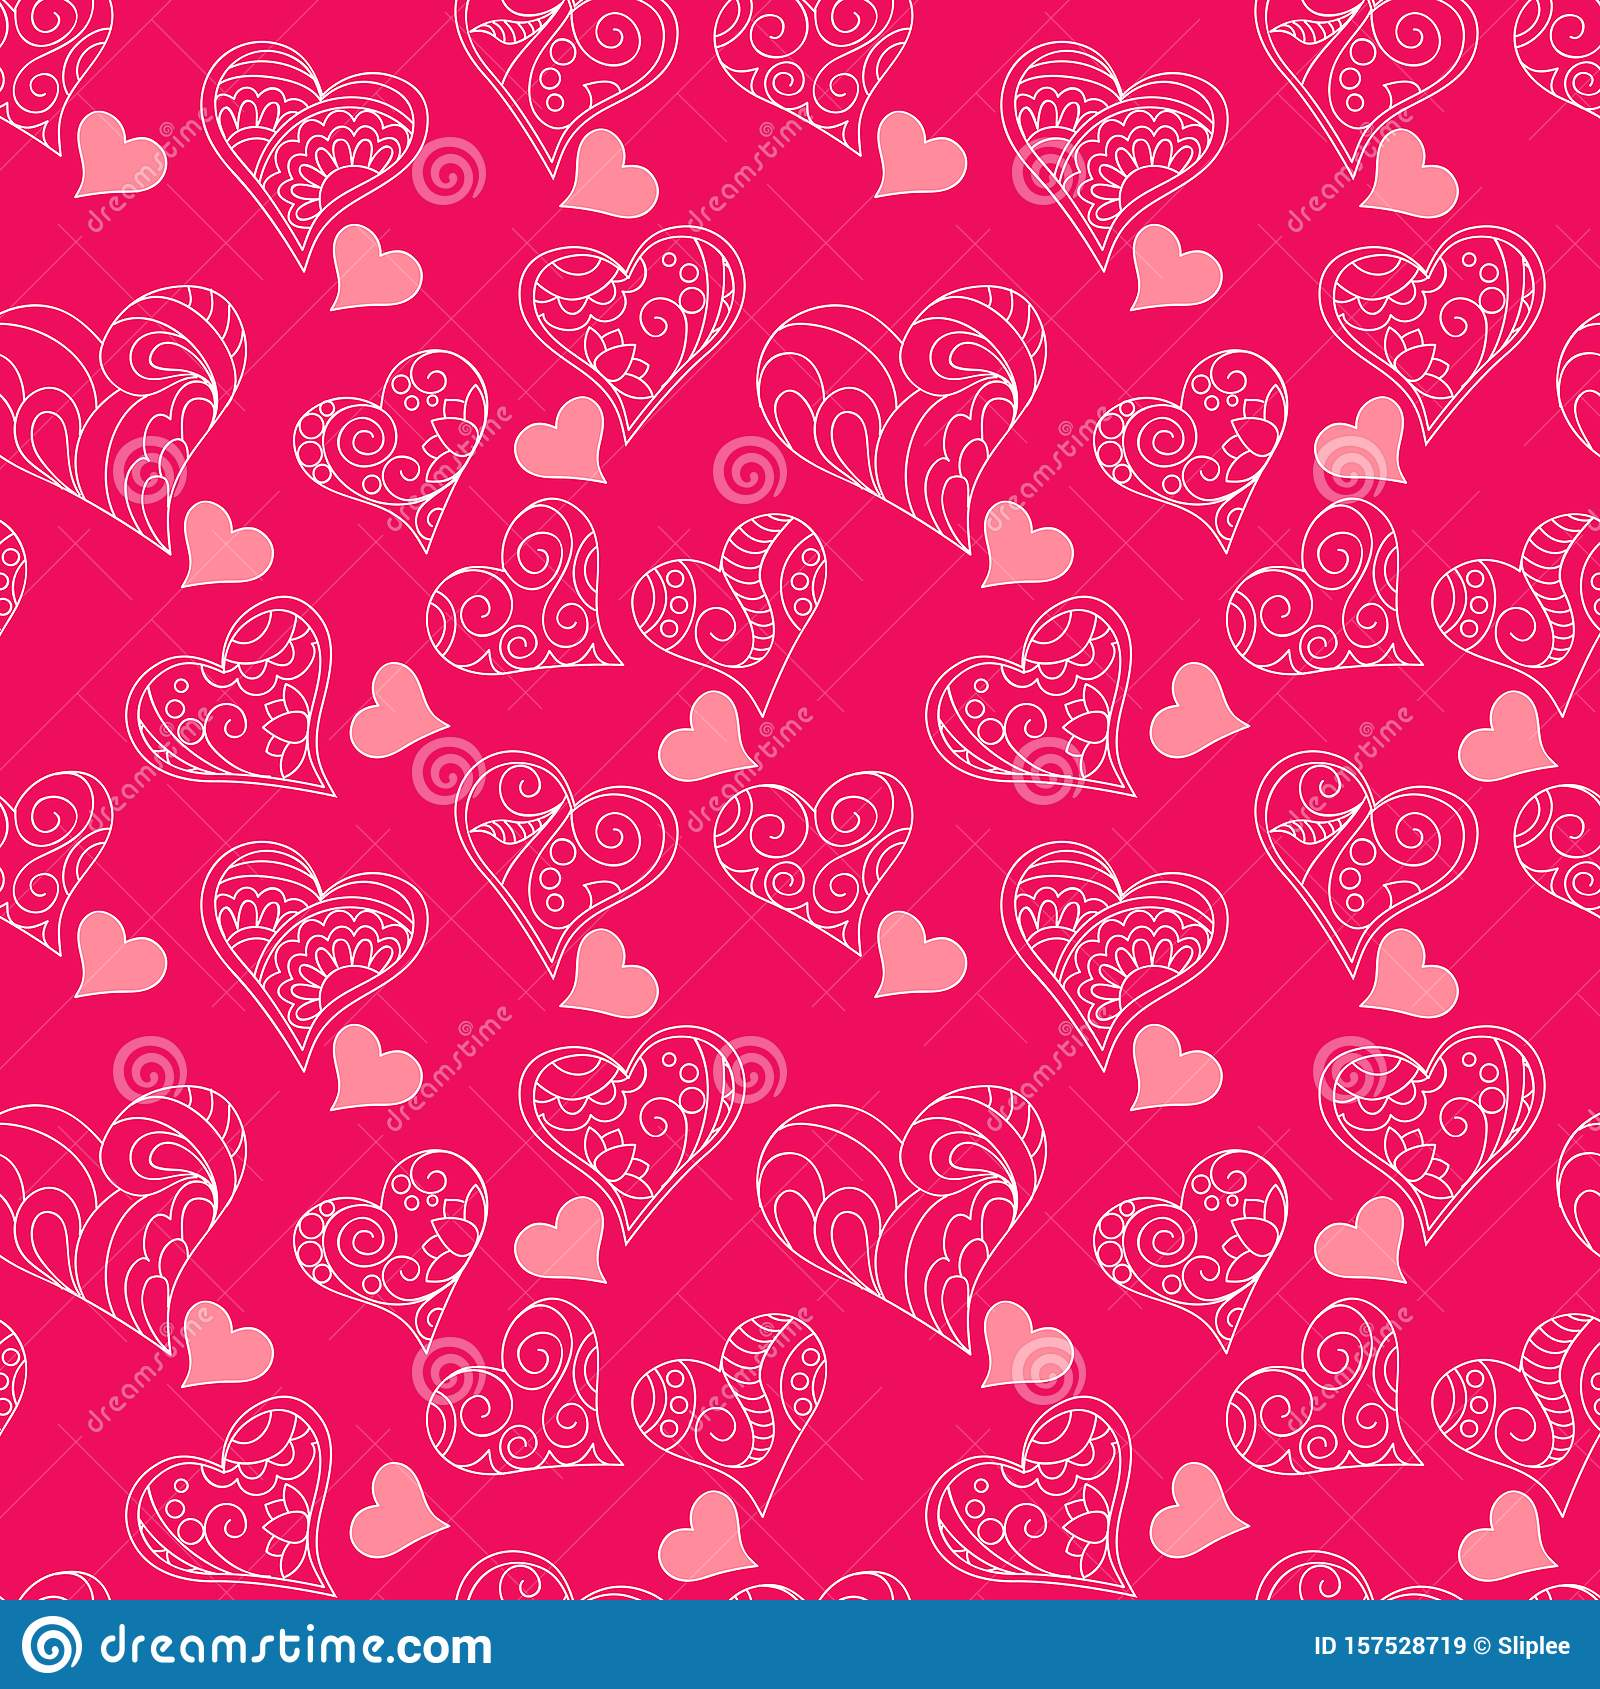 Pink pattern of hearts